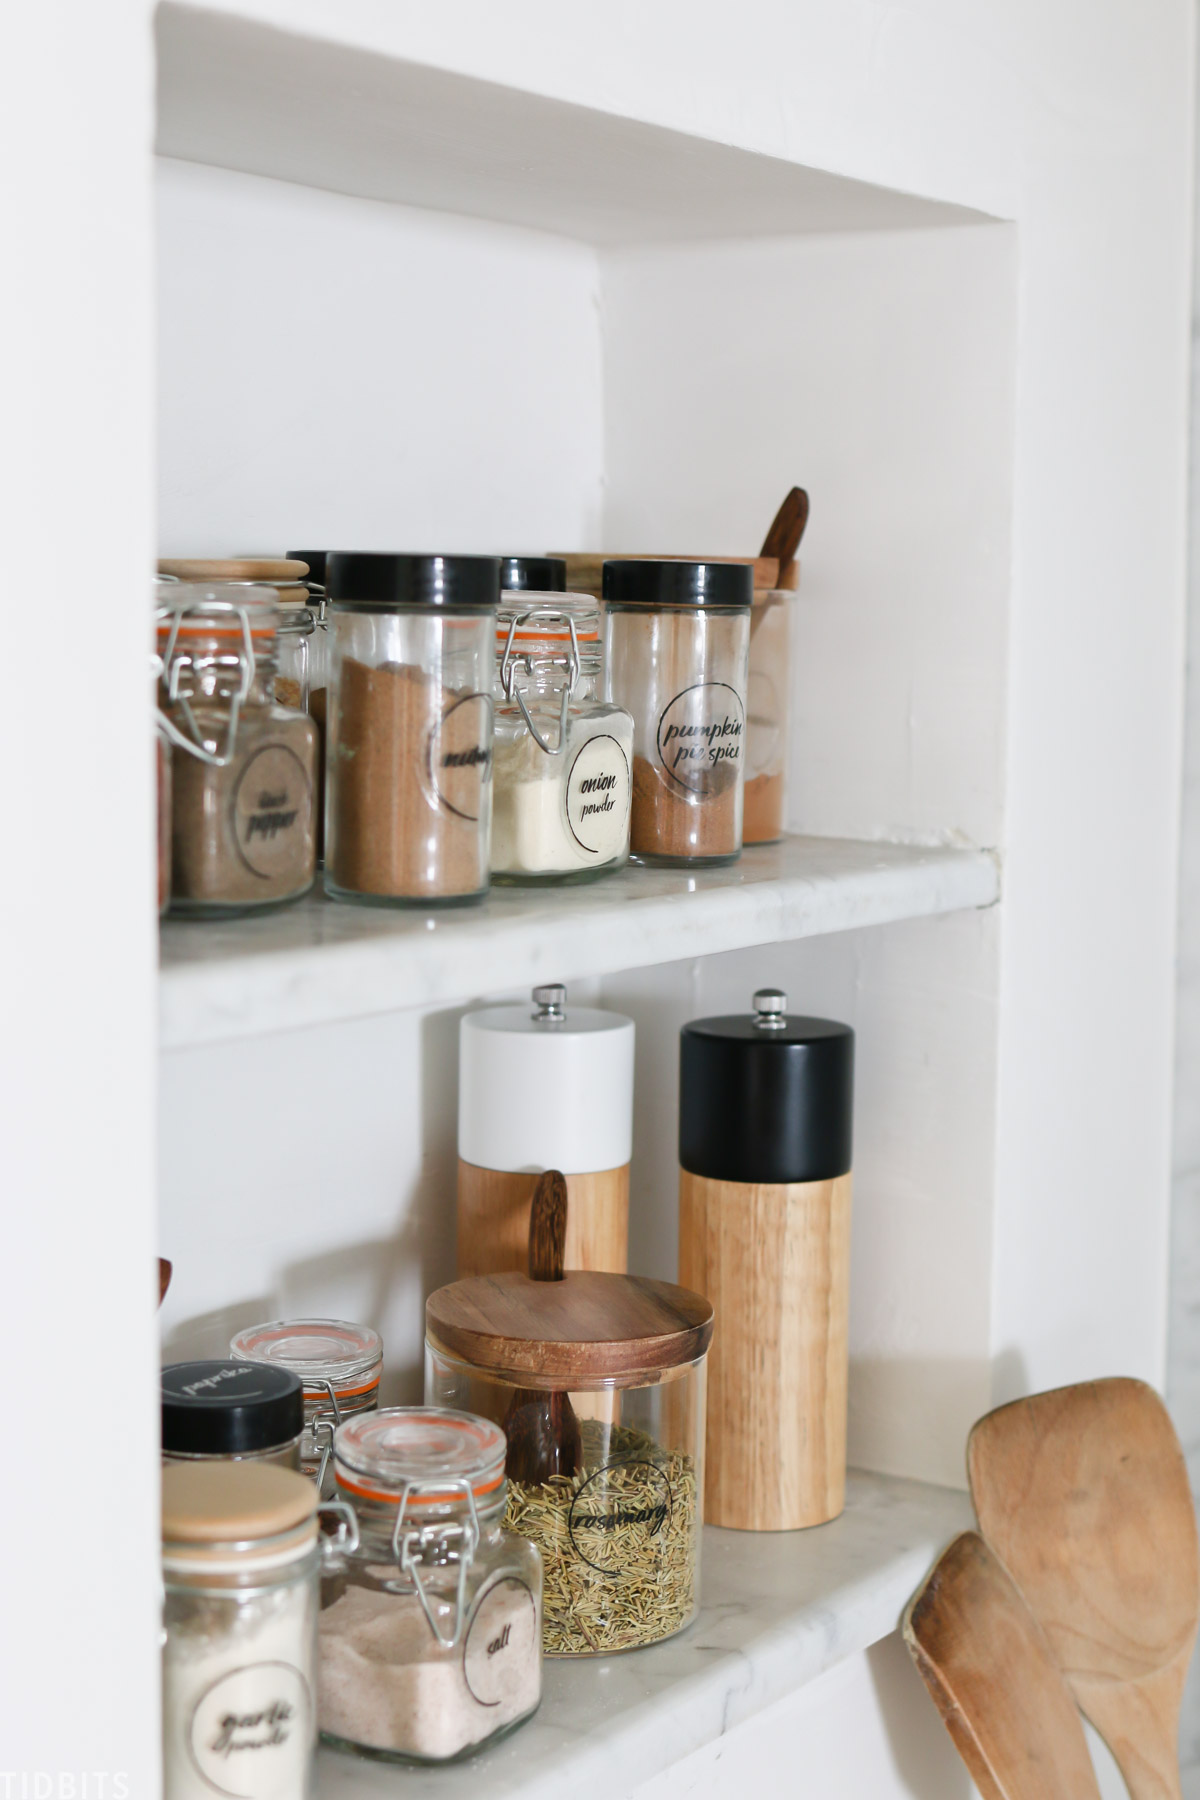 Organize spices for display